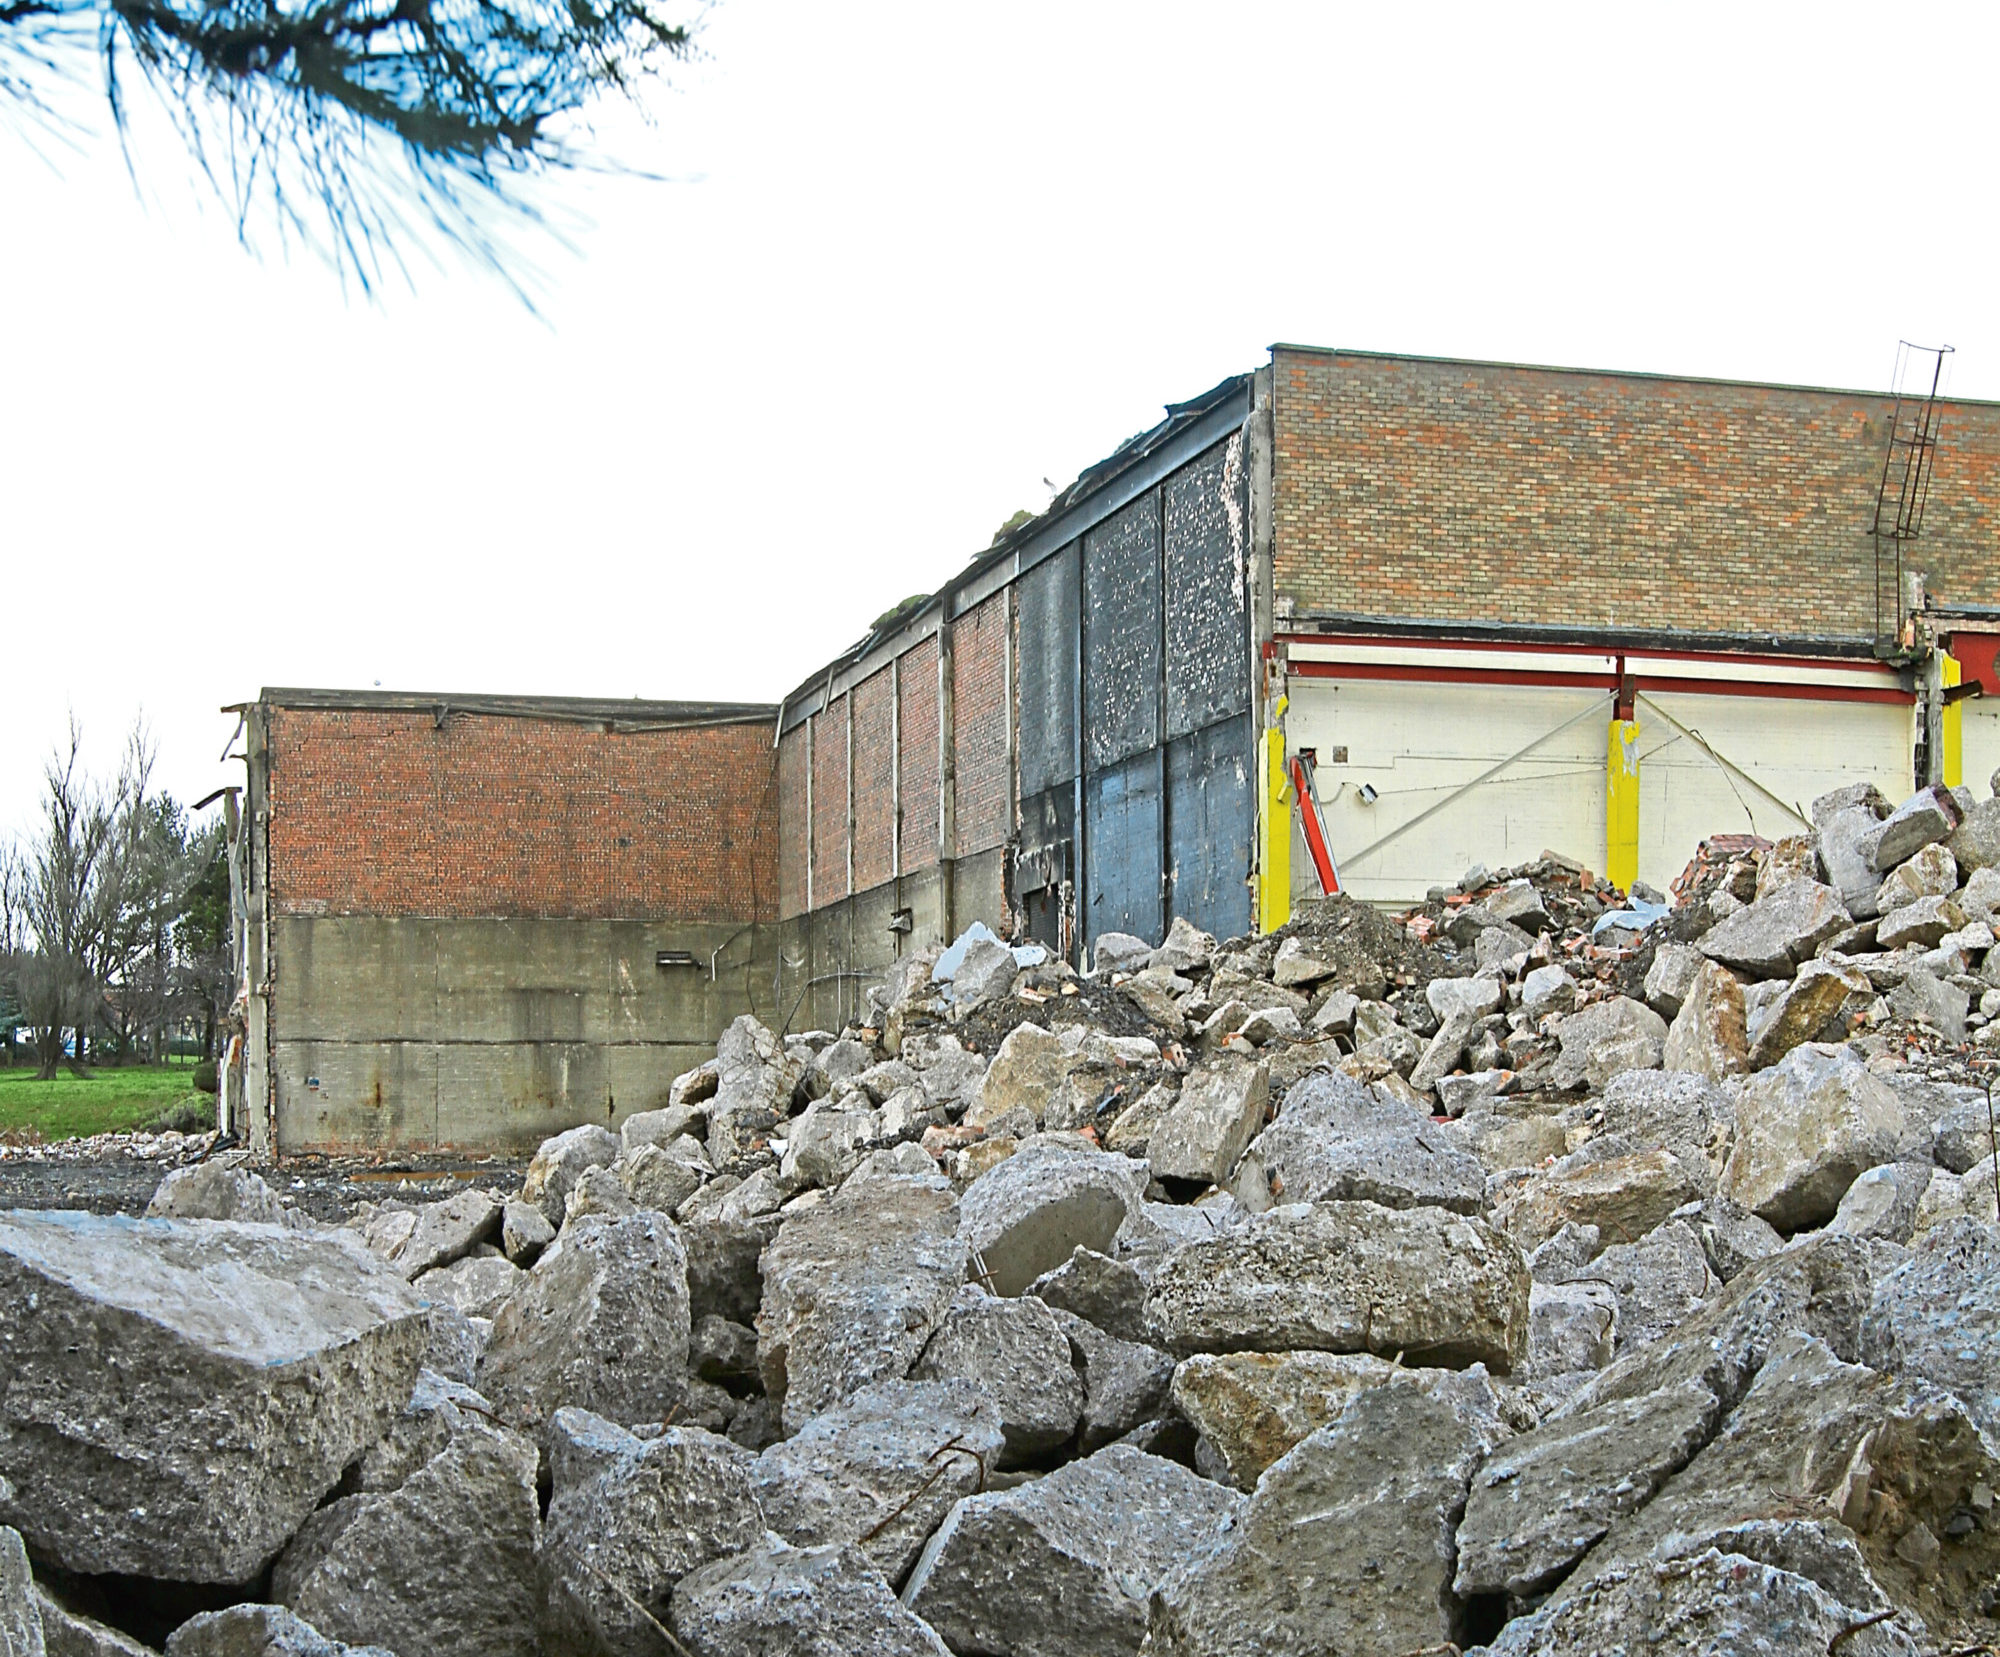 The bottling plant developers hope to turn into homes